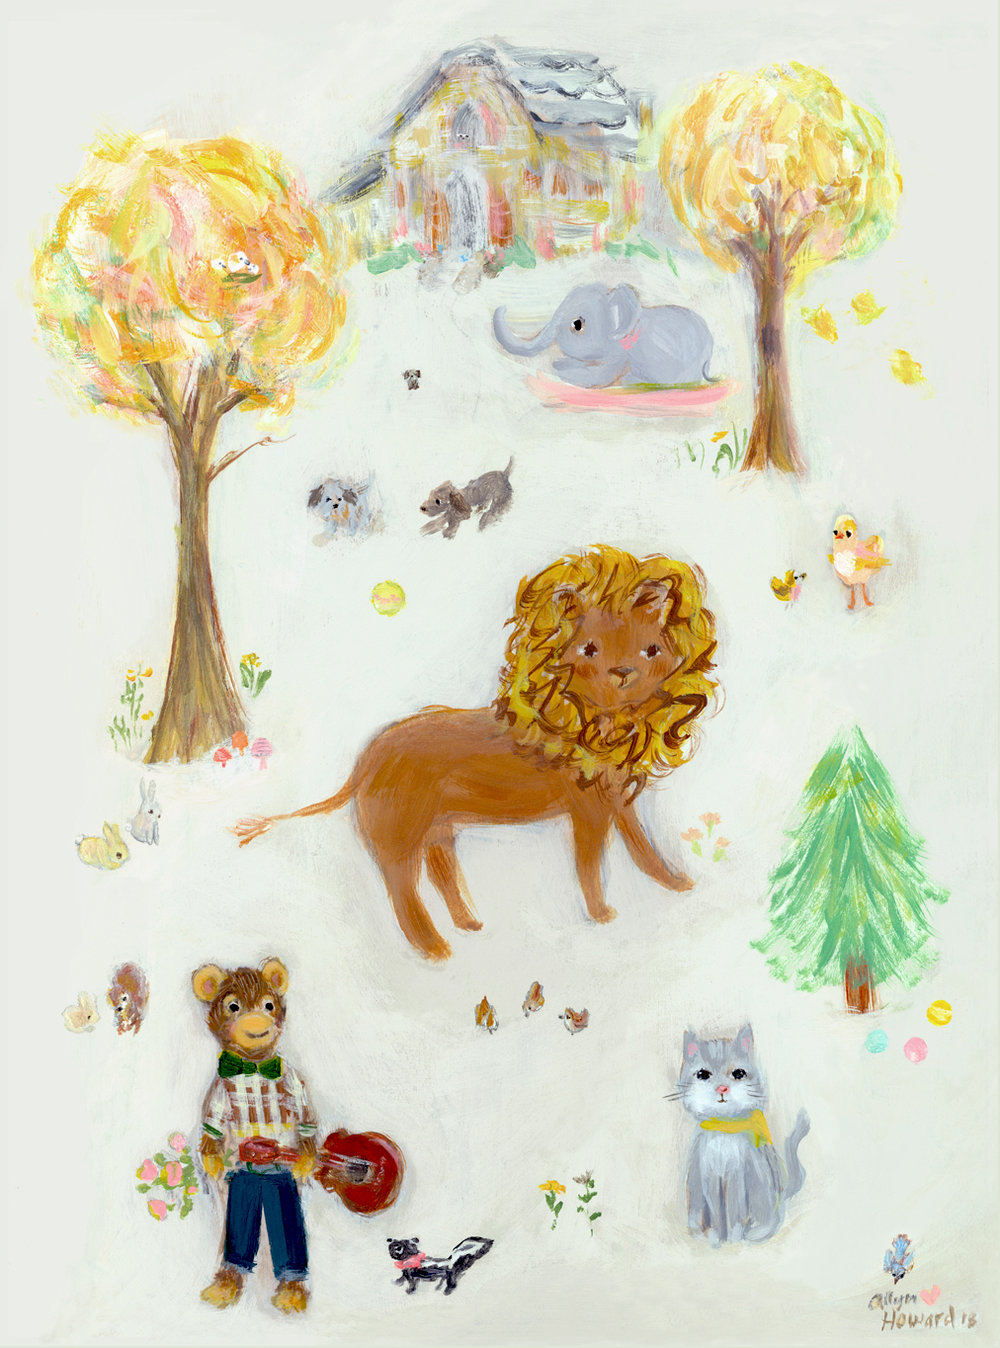 Allyn_Howard_Lion_countryside.jpg